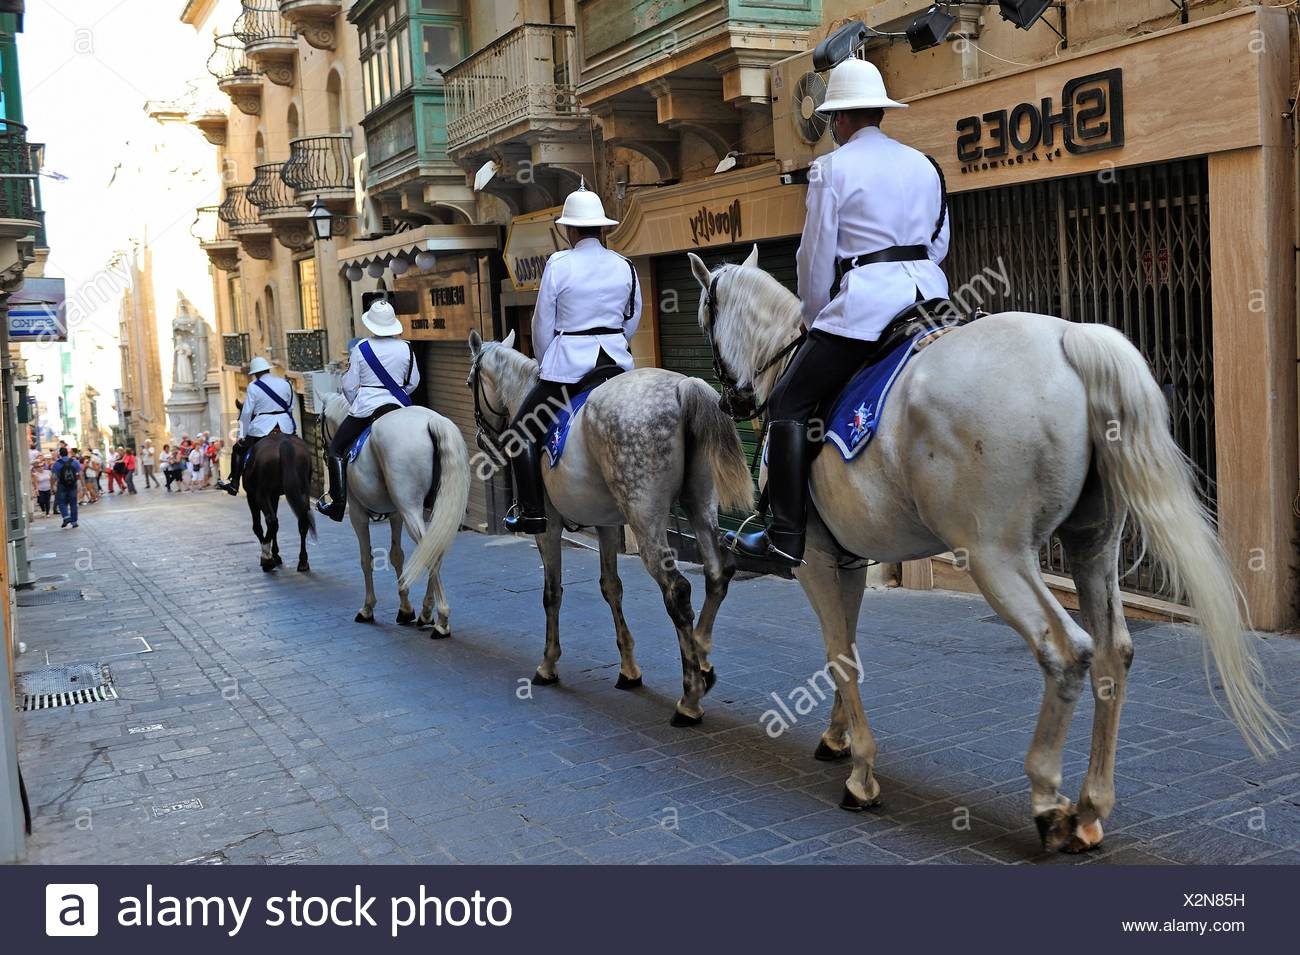 Ceremonial horse cavalry, Valletta, Malta, Southern Europe. - Stock Image